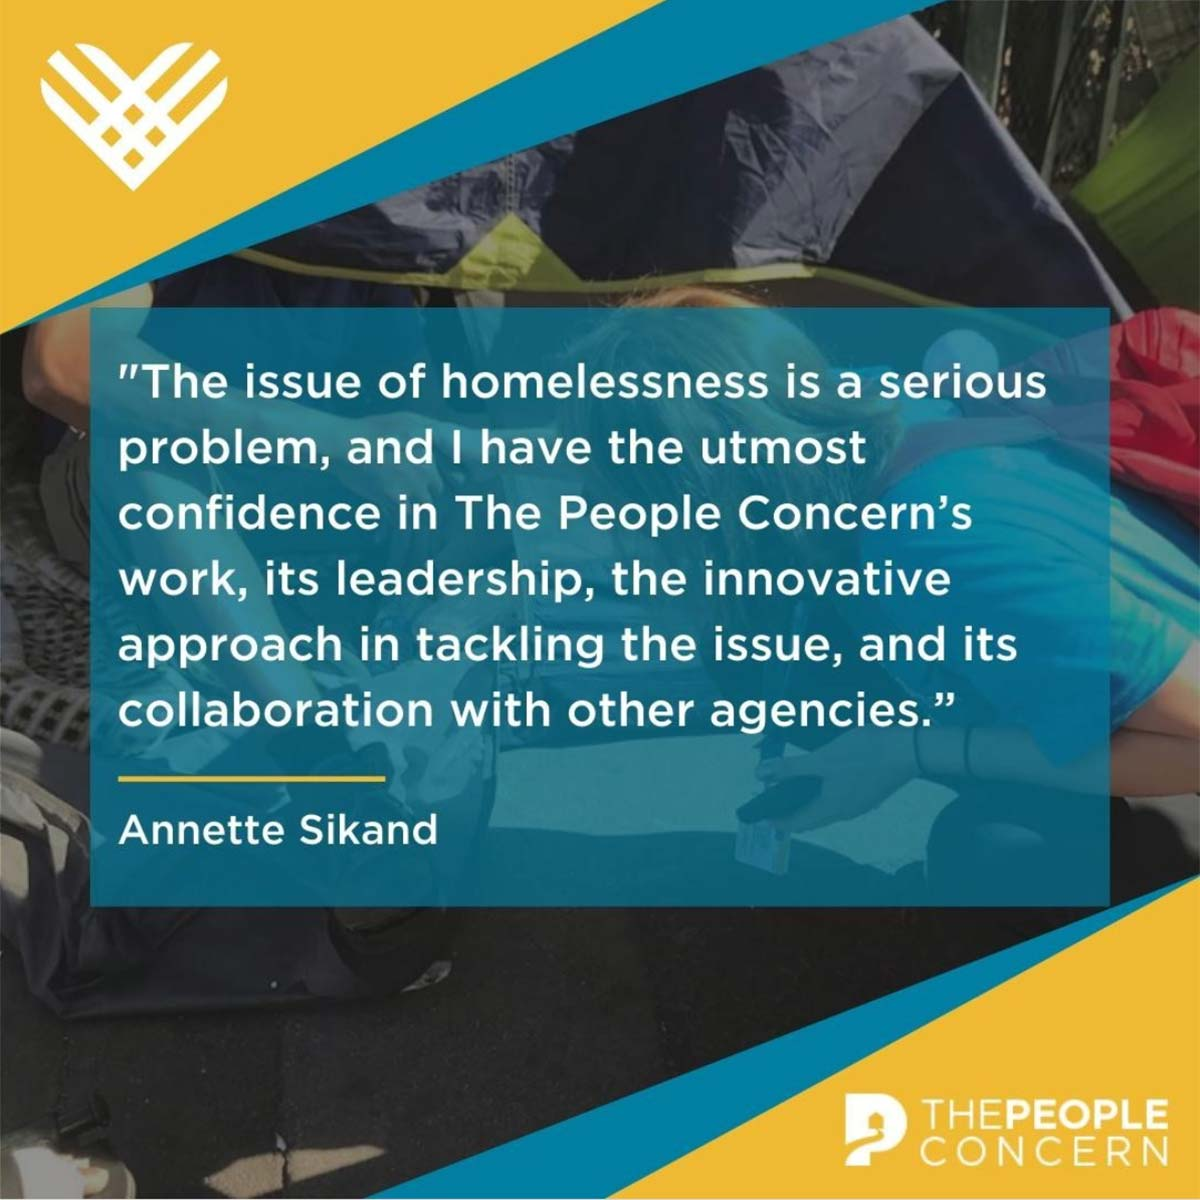 """Instagram image from The People Concern, with a quote from Annette Sikand: """"The issue of homelessness is a serious problem, and I have the utmost confidence in The People Concern's work, its leadership, the innovative approach in tackling the issue, and its collaboration with other agencies."""""""